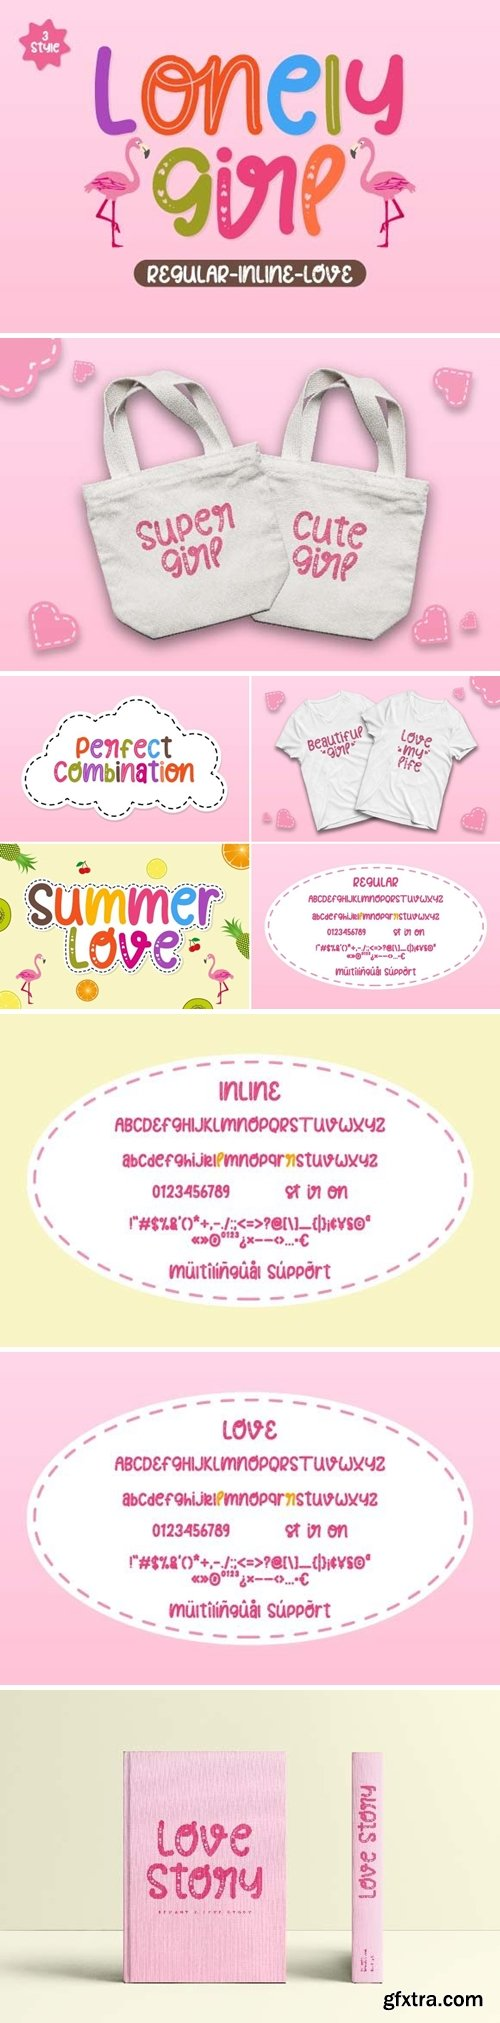 Lonely Girl Font